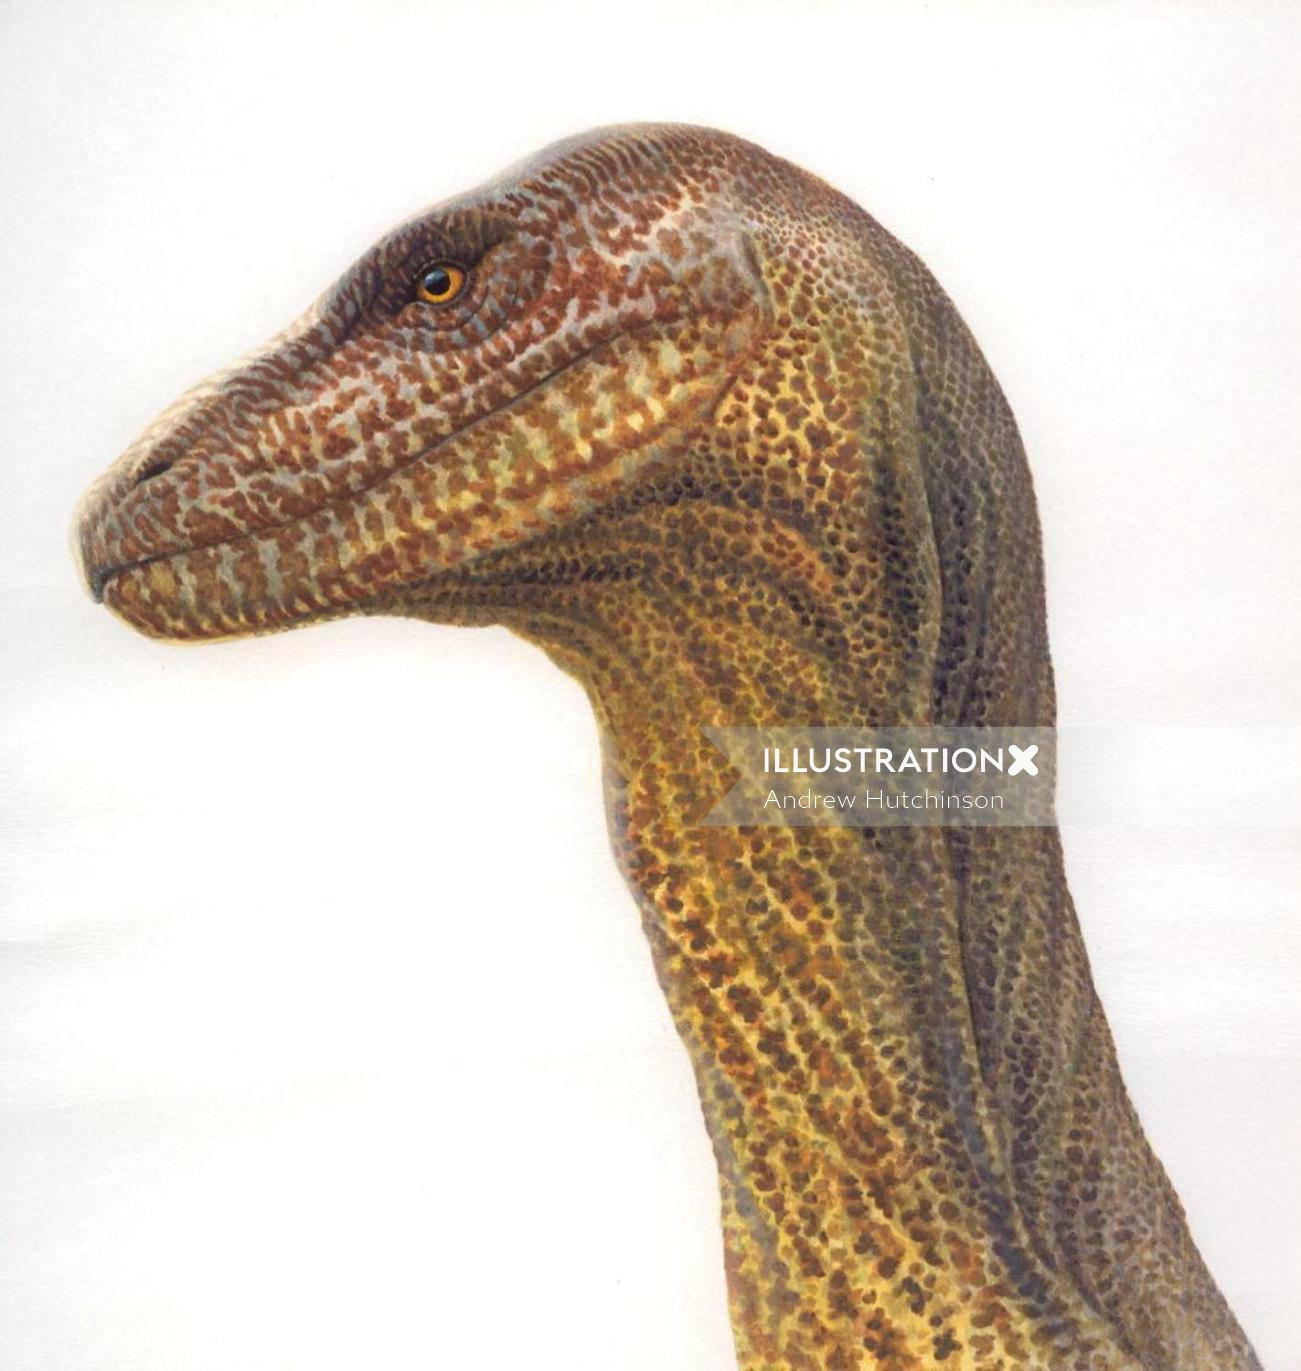 Dinosaur Illustration, Wildlife Images © Andrew Hutchinson